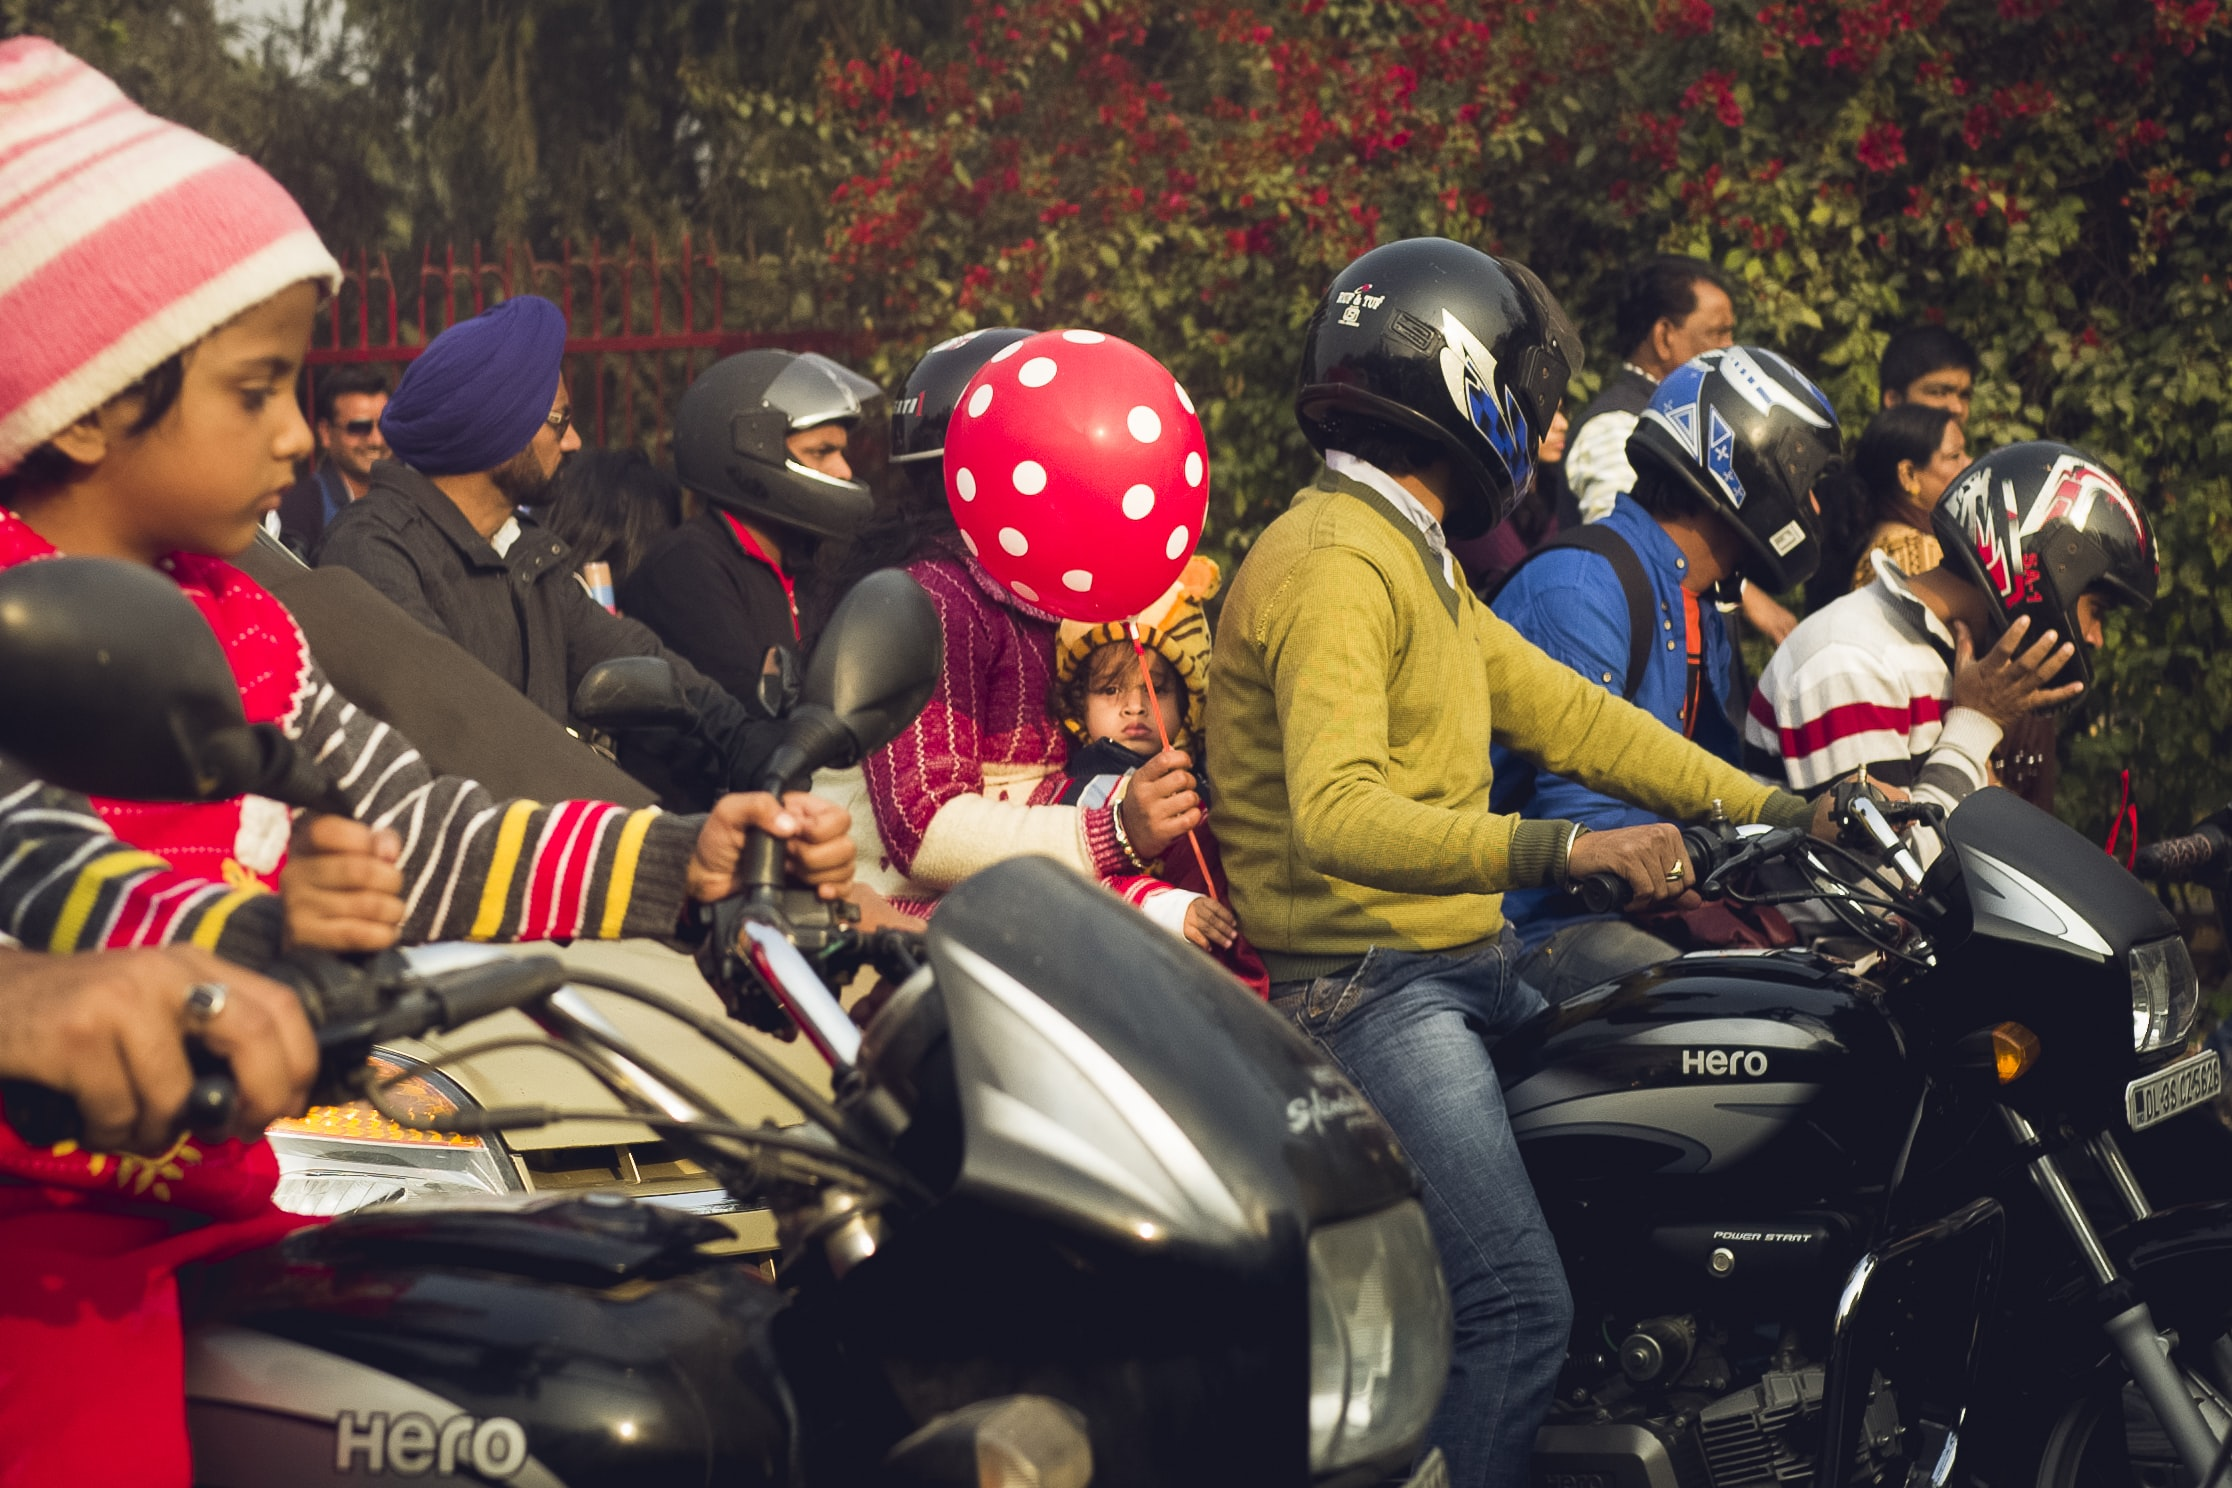 group of people riding motorcycle